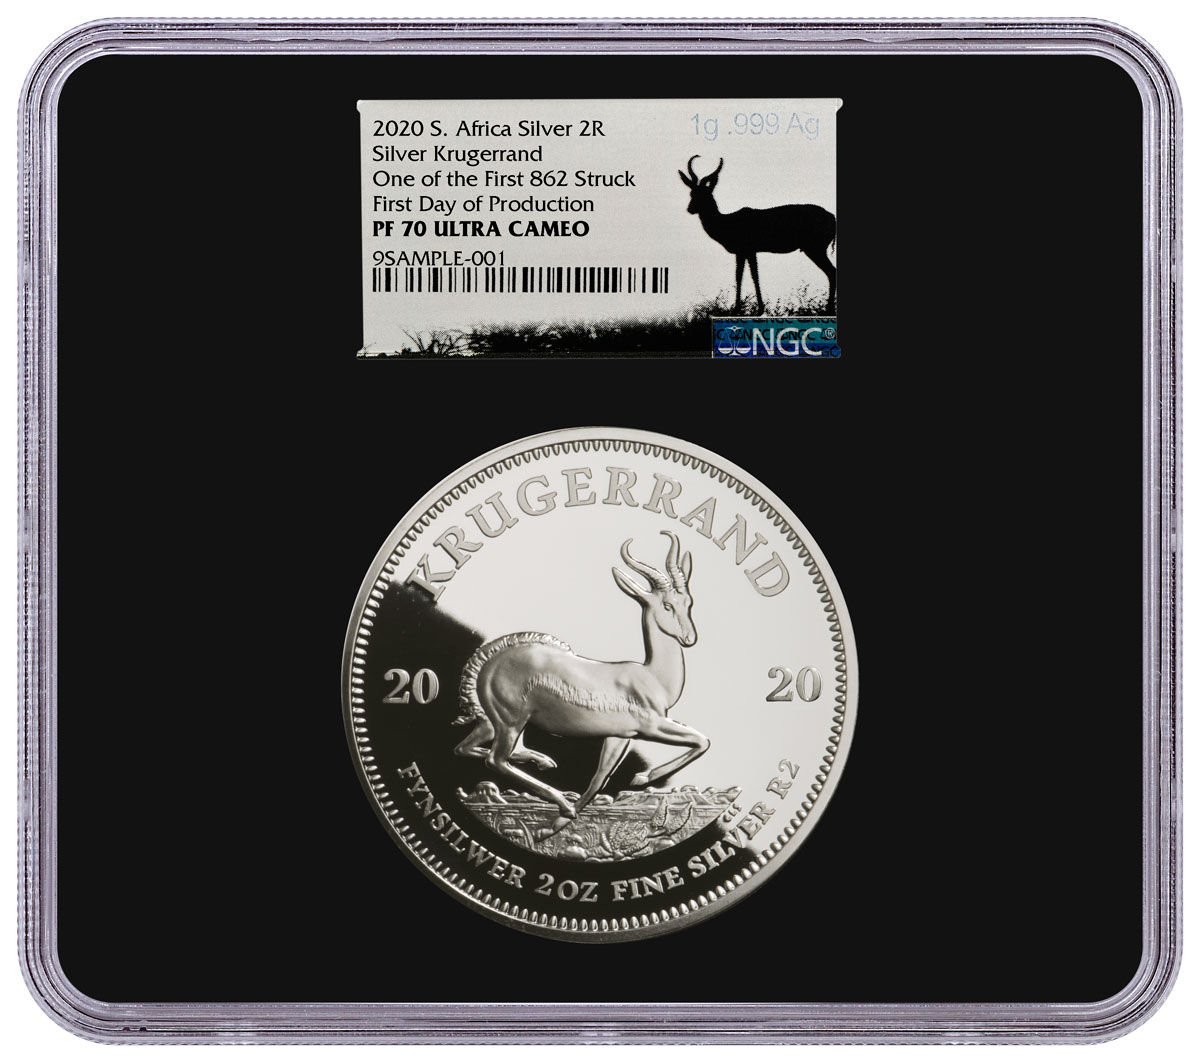 2020 South Africa 2 oz Silver Krugerrand Proof R2 Coin Scarce and Unique Coin Division NGC PF70 UC One of First 862 Struck First Day of Production Black Core Holder Silver Label